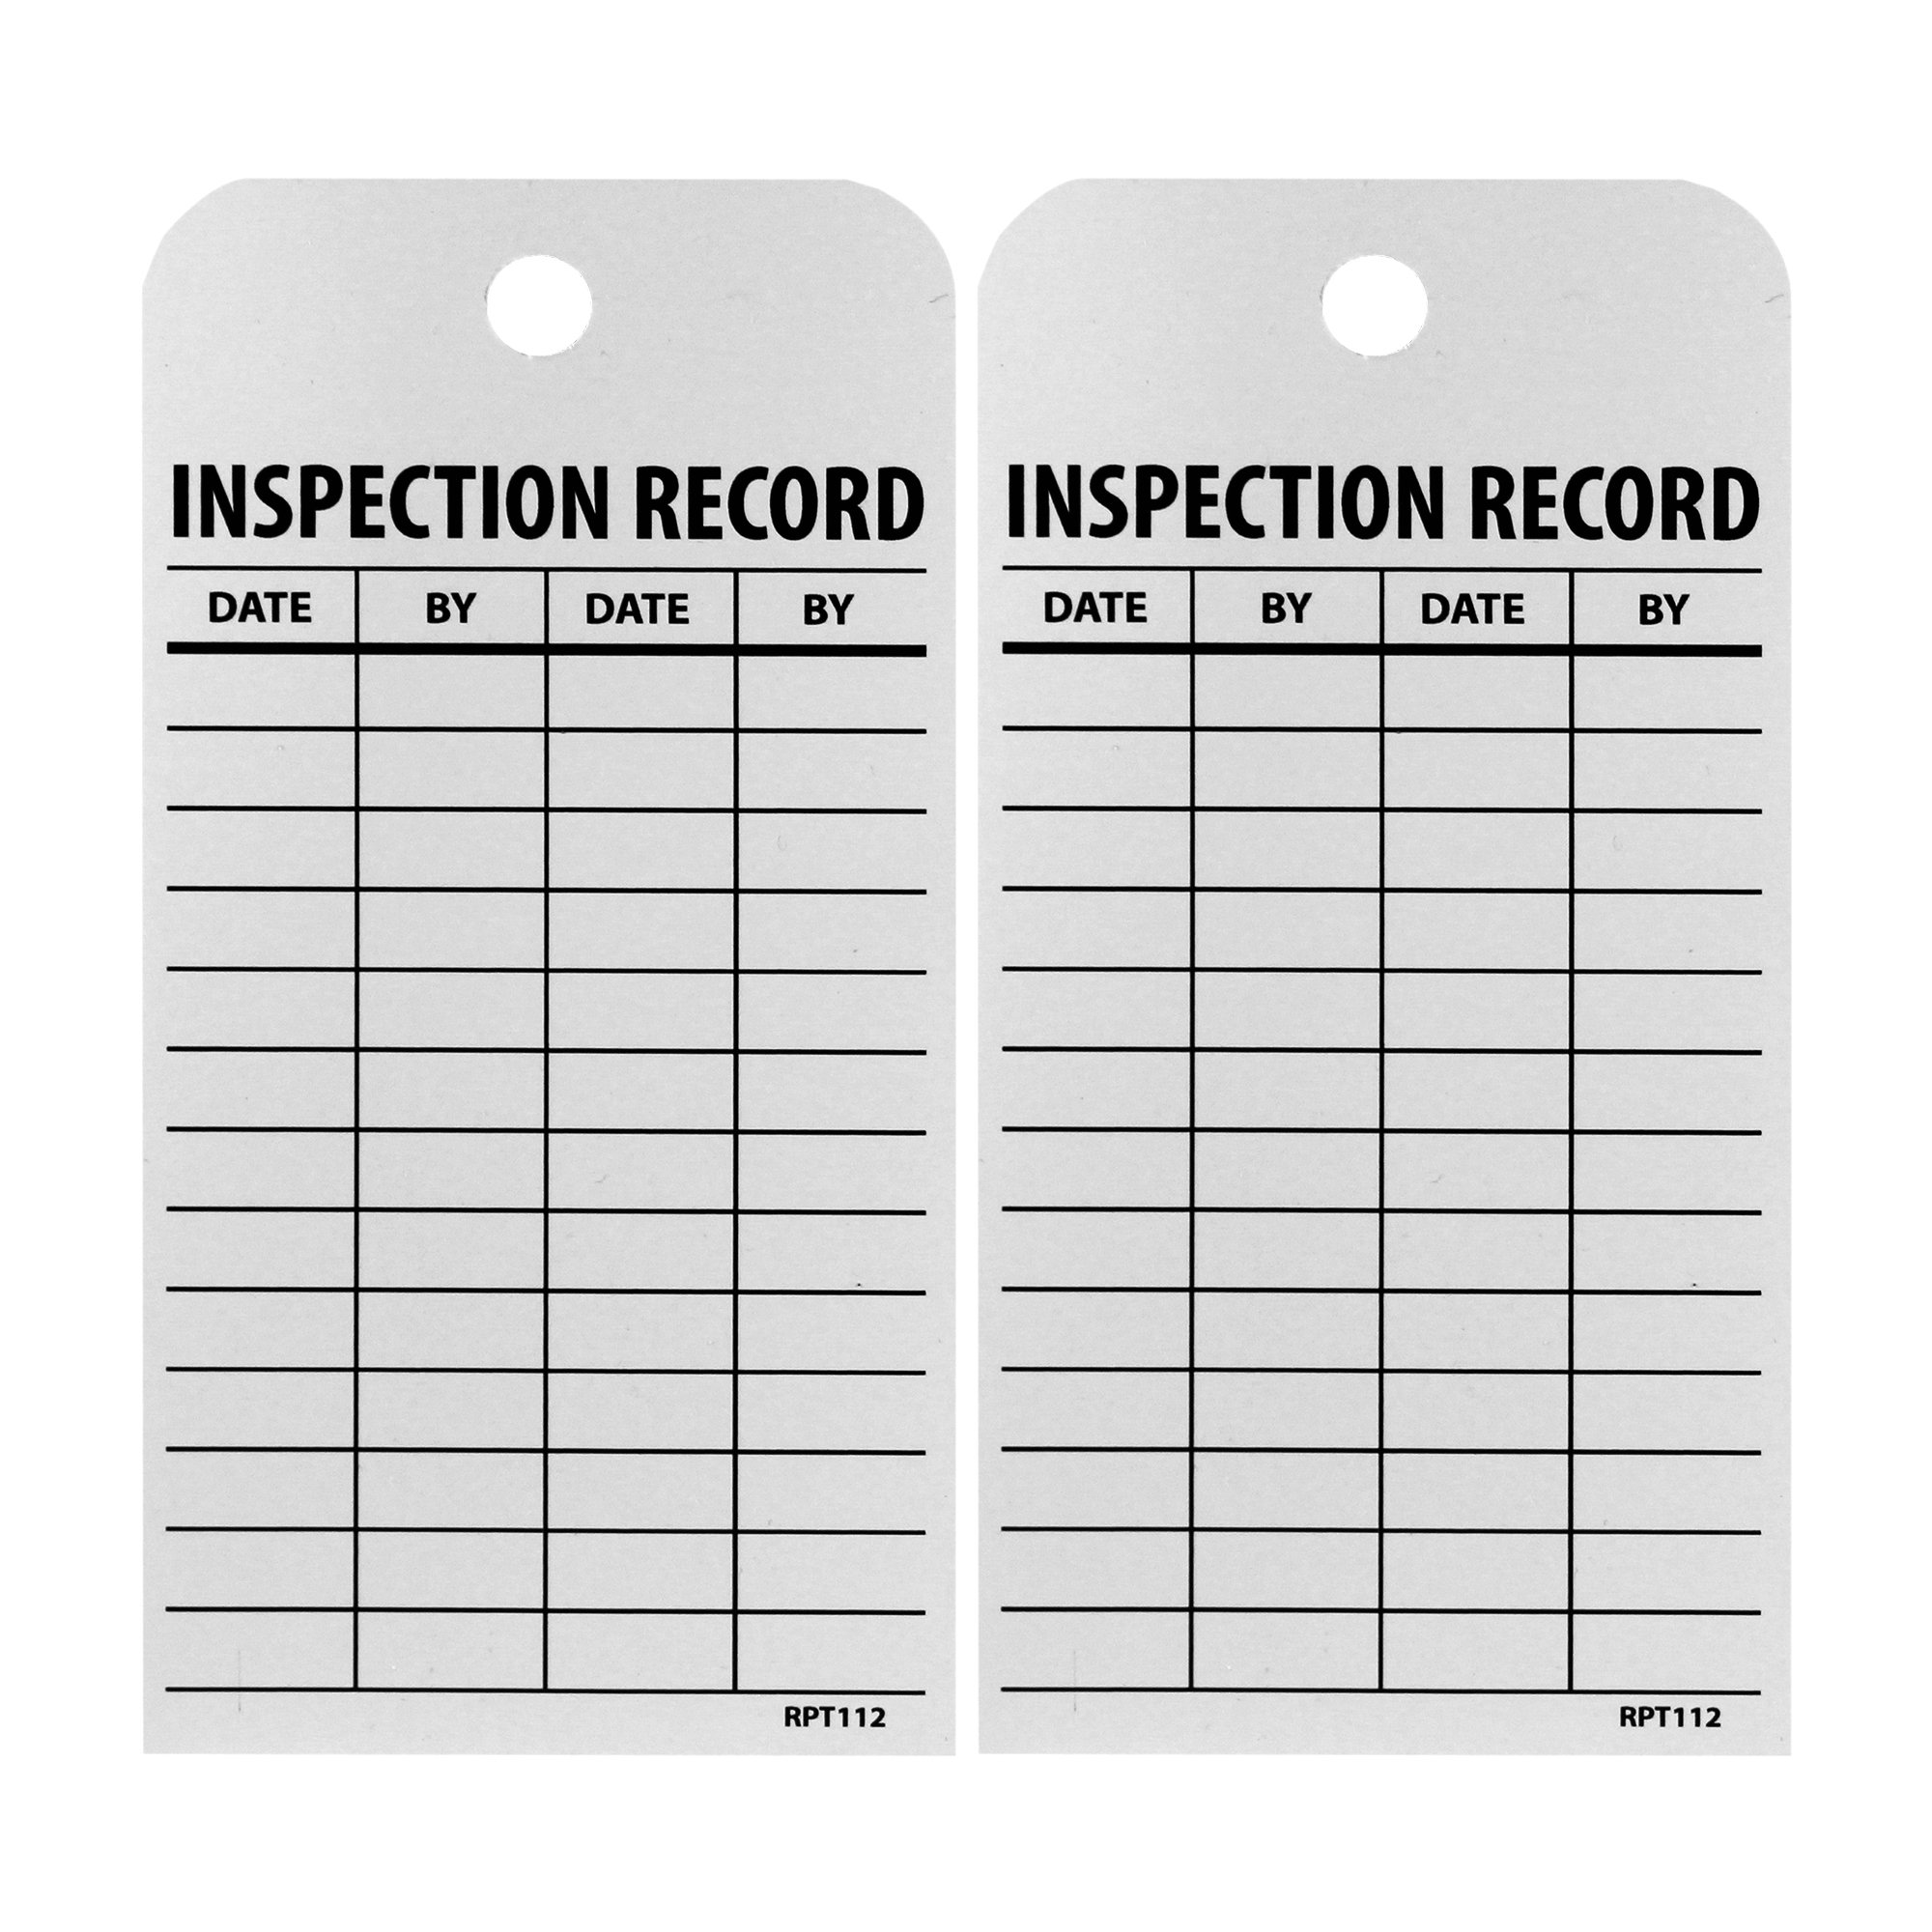 NMC RPT112 Accident Prevention Tag, ''INSPECTION RECORD'', 3'' Width x 6'' Height, Unrippable Vinyl, Black on White (Pack of 25) by NMC